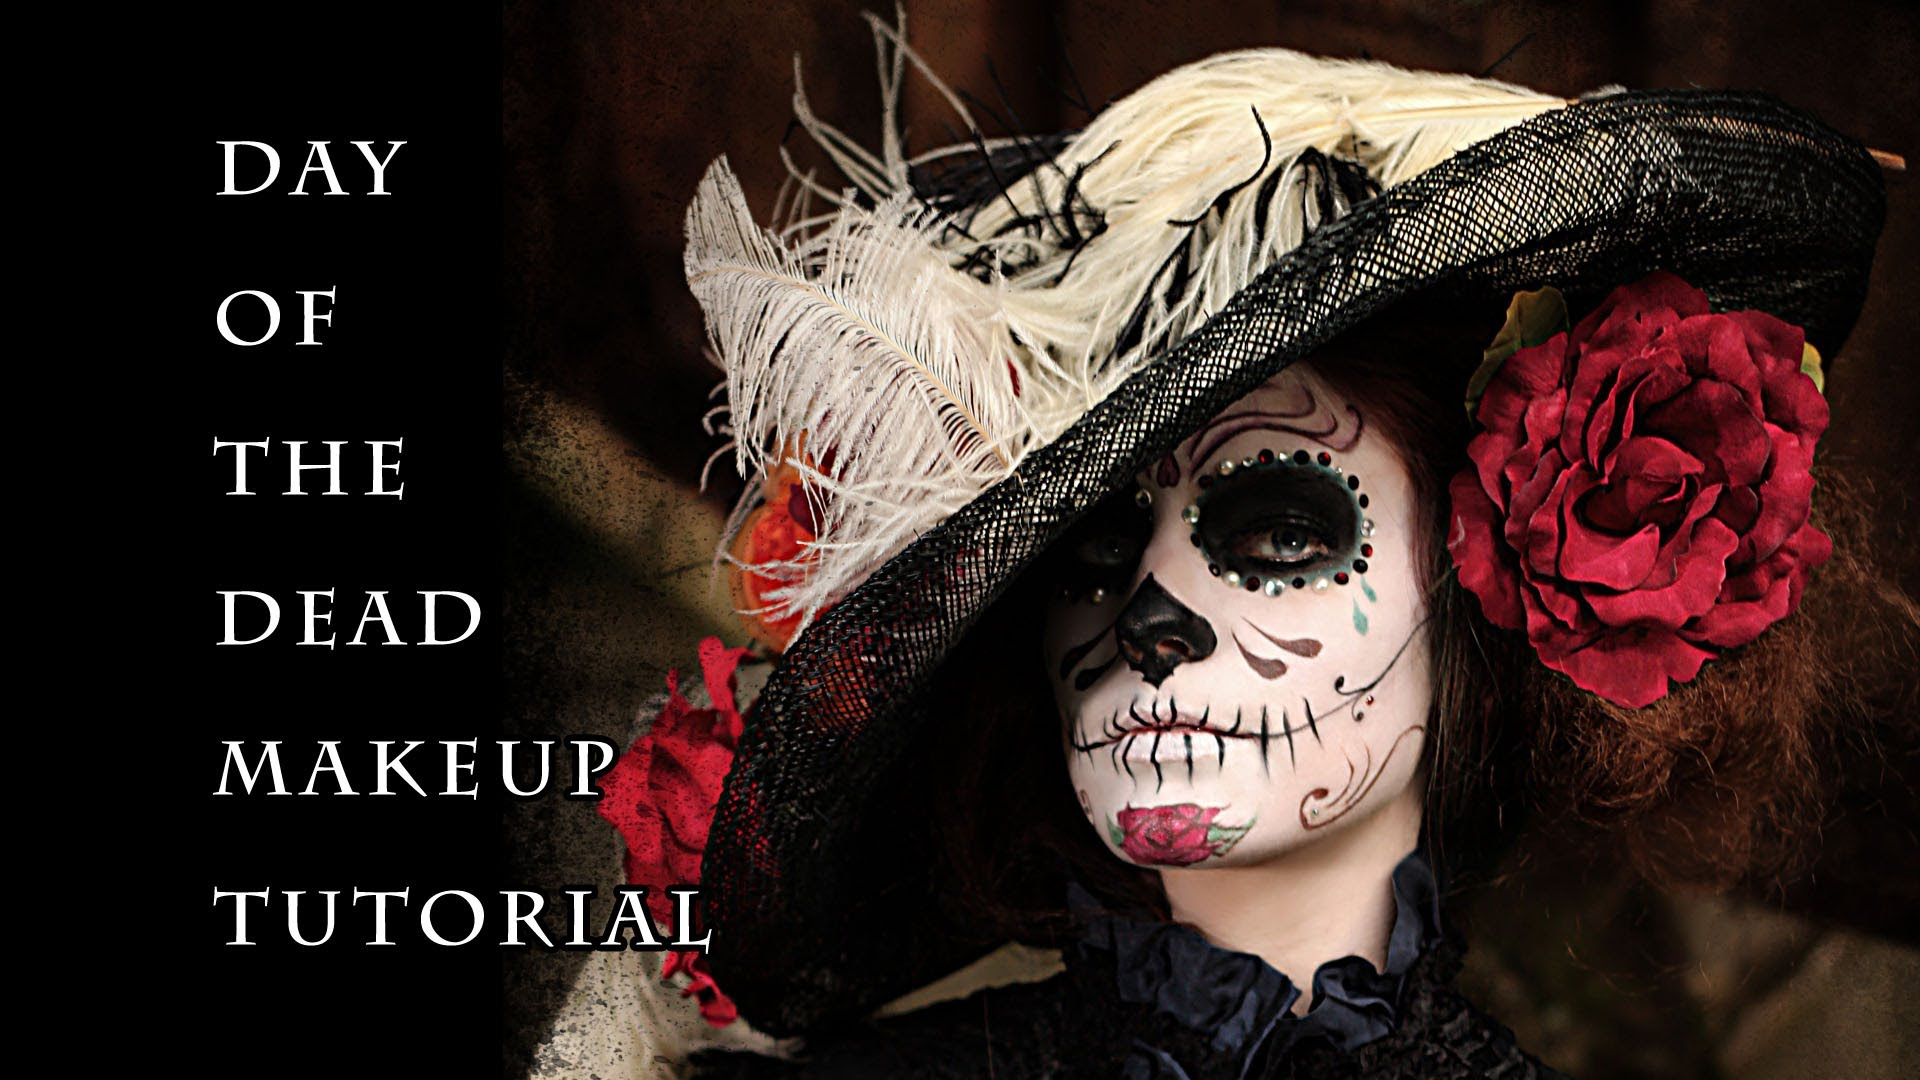 Day-of-the-Dead-Makeup-Tutorial-wallpaper-wpc5803960